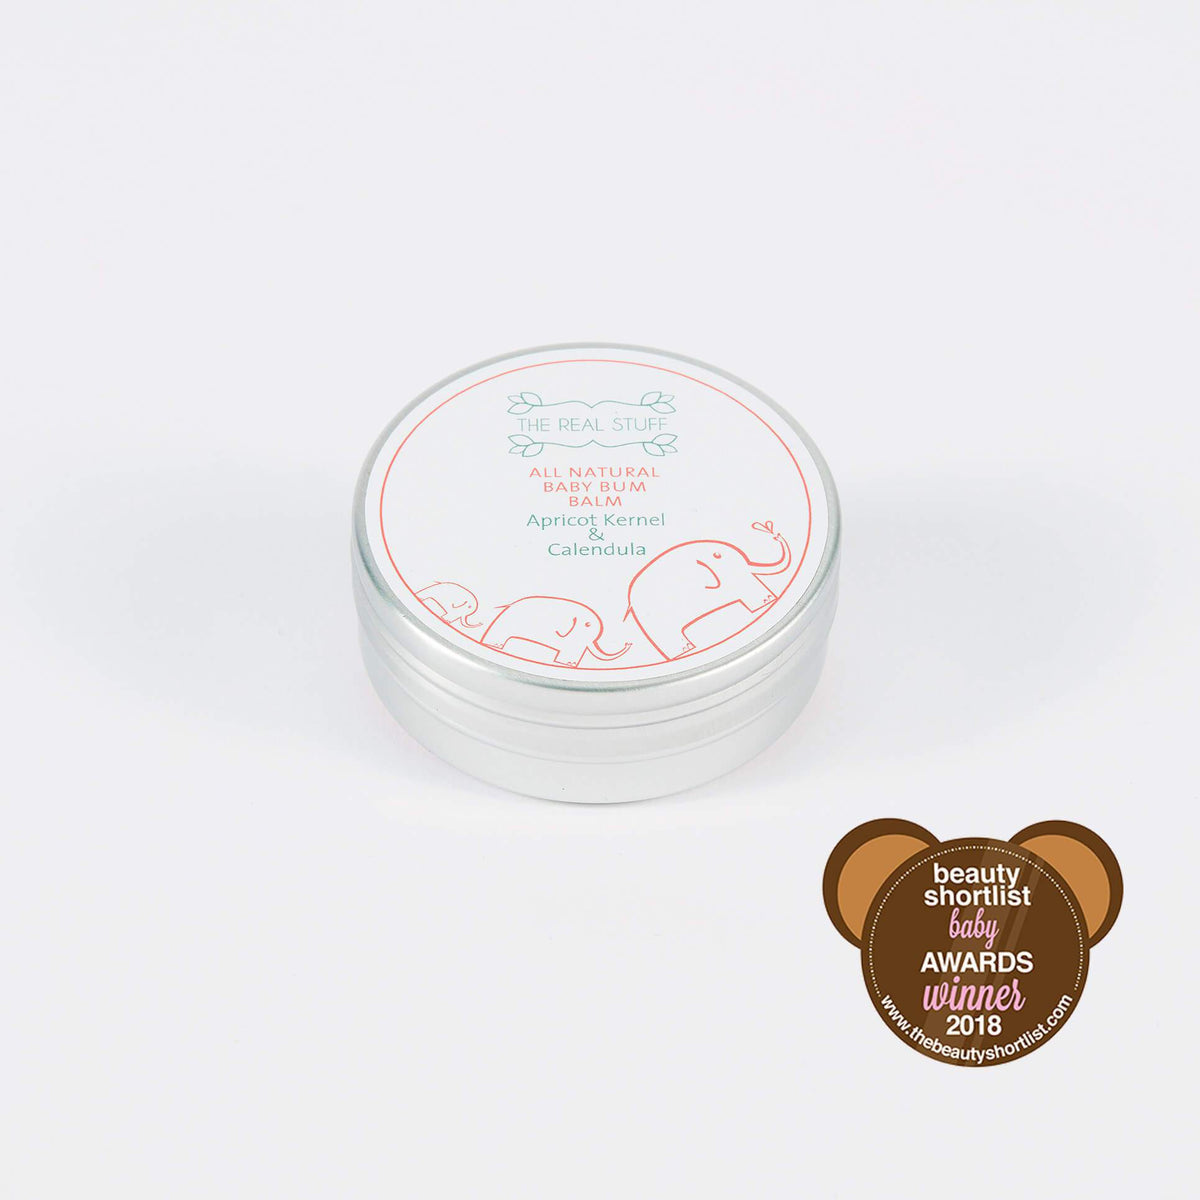 All Natural Baby Bum Balm Baby The Real Stuff Organic Skincare - Genuine Selection